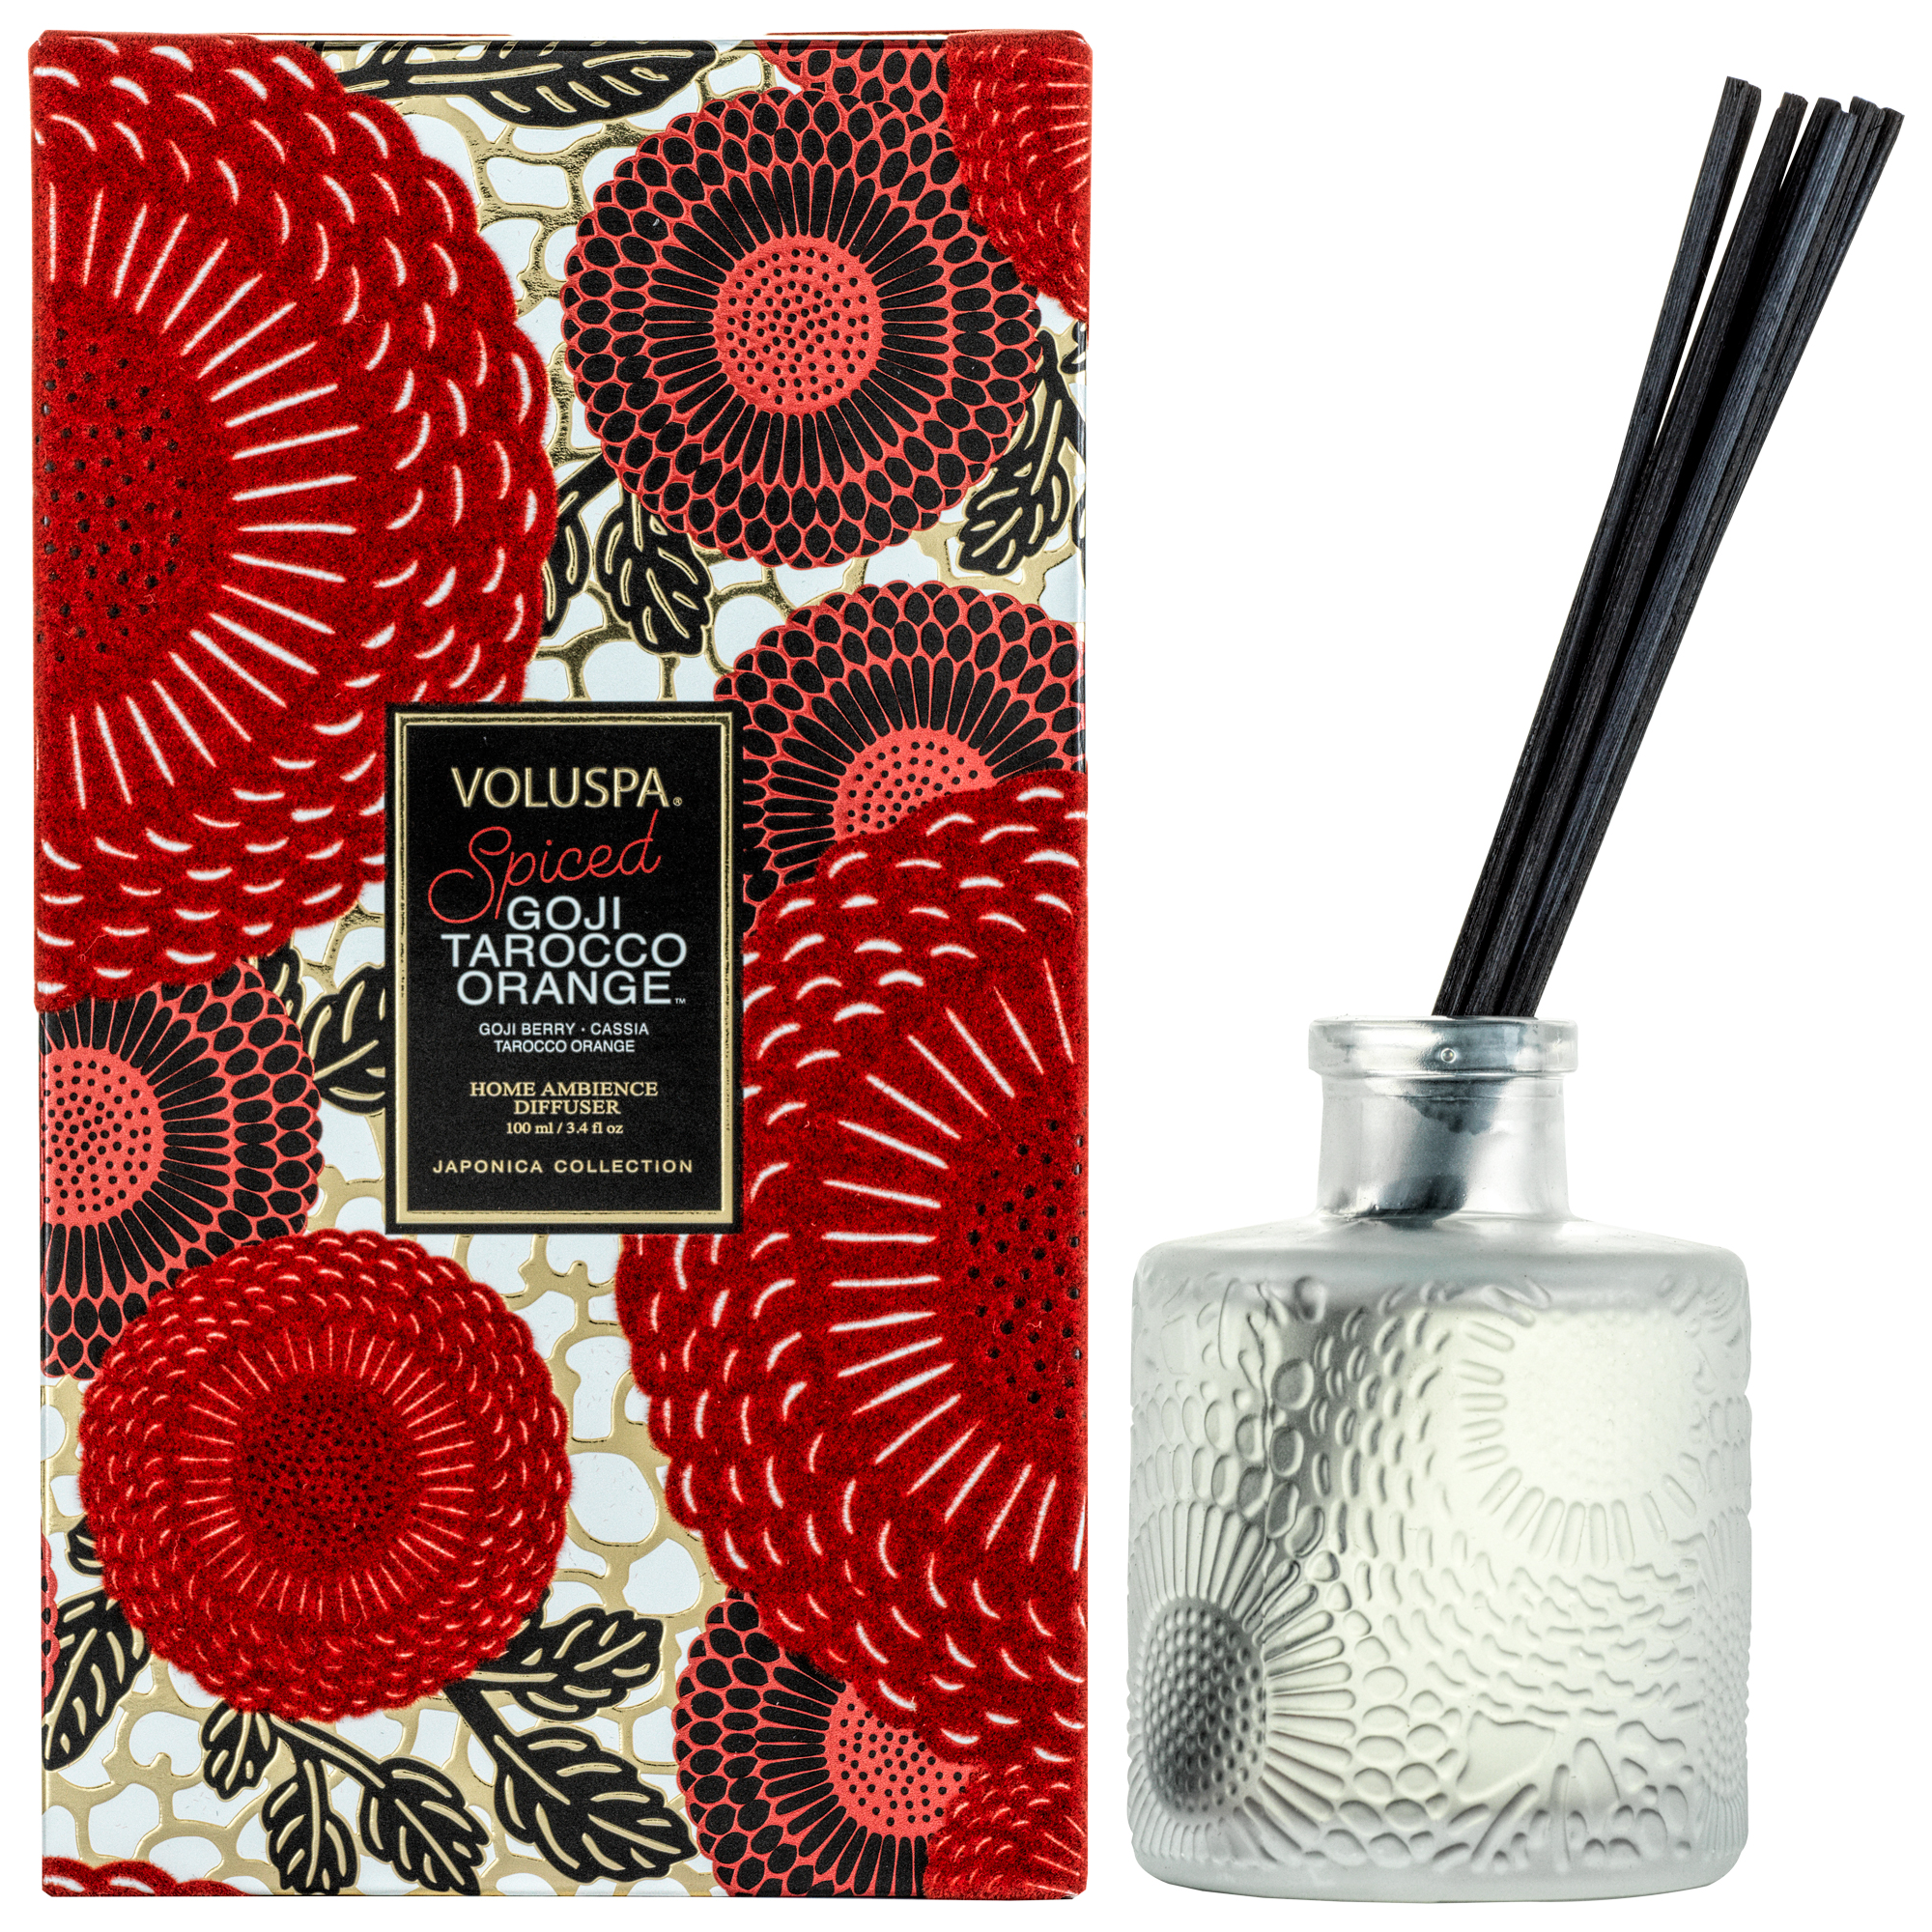 SPICED GOJI TAROCCO ORANGE REED DIFFUSER